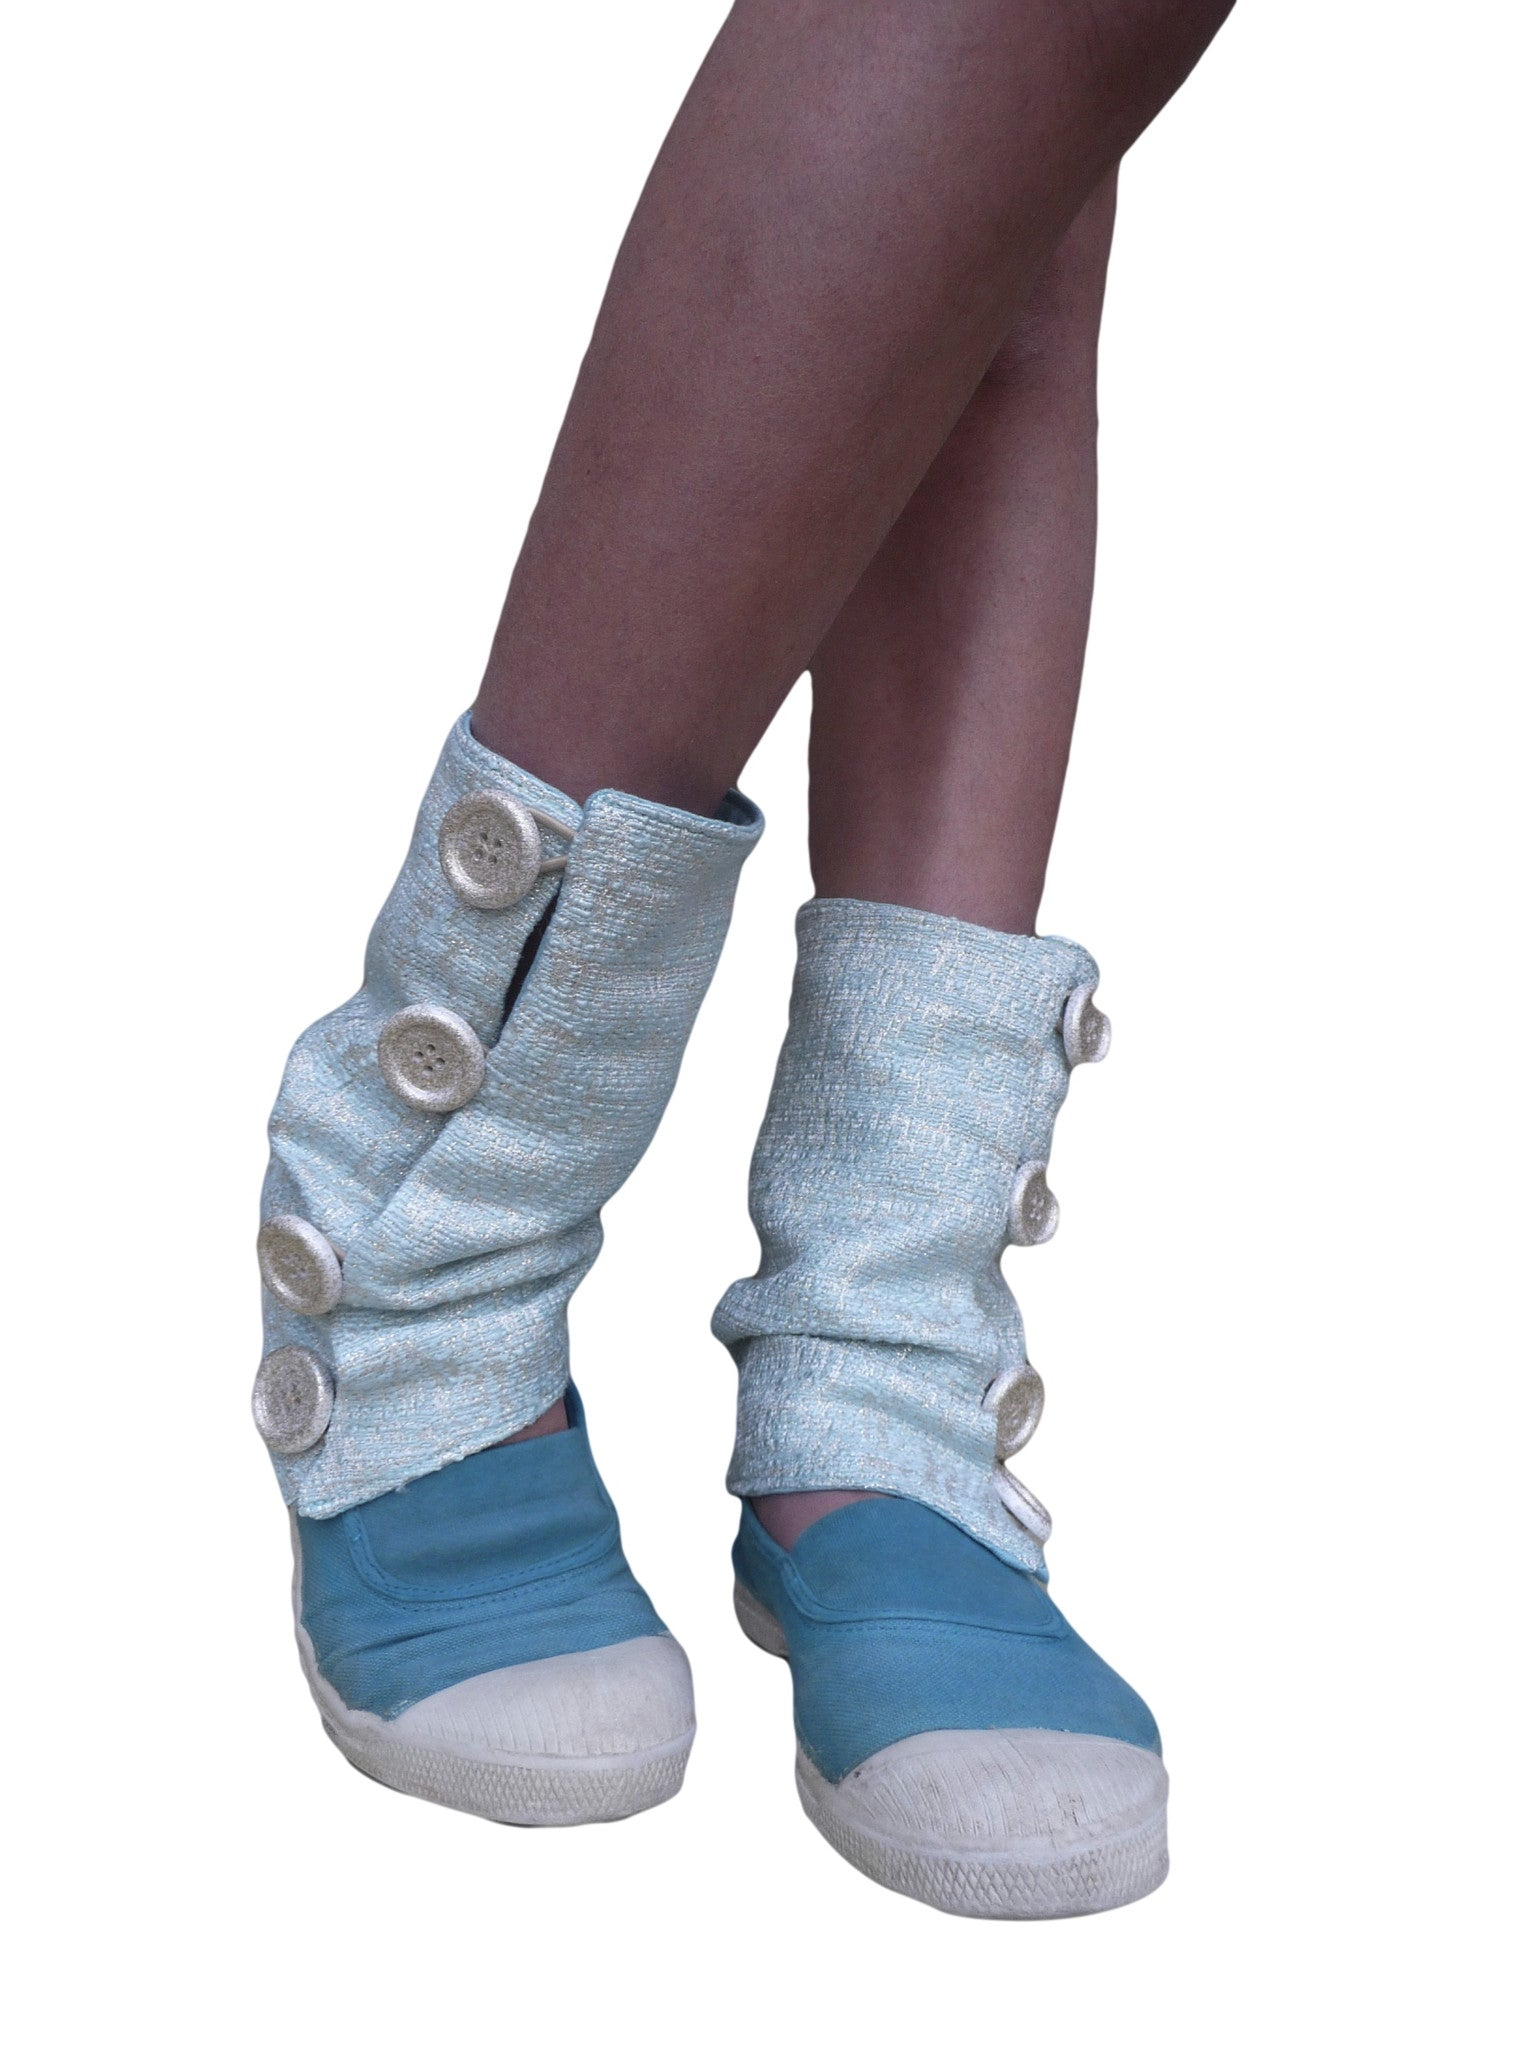 Aigue-Marine Summer Leg Warmers